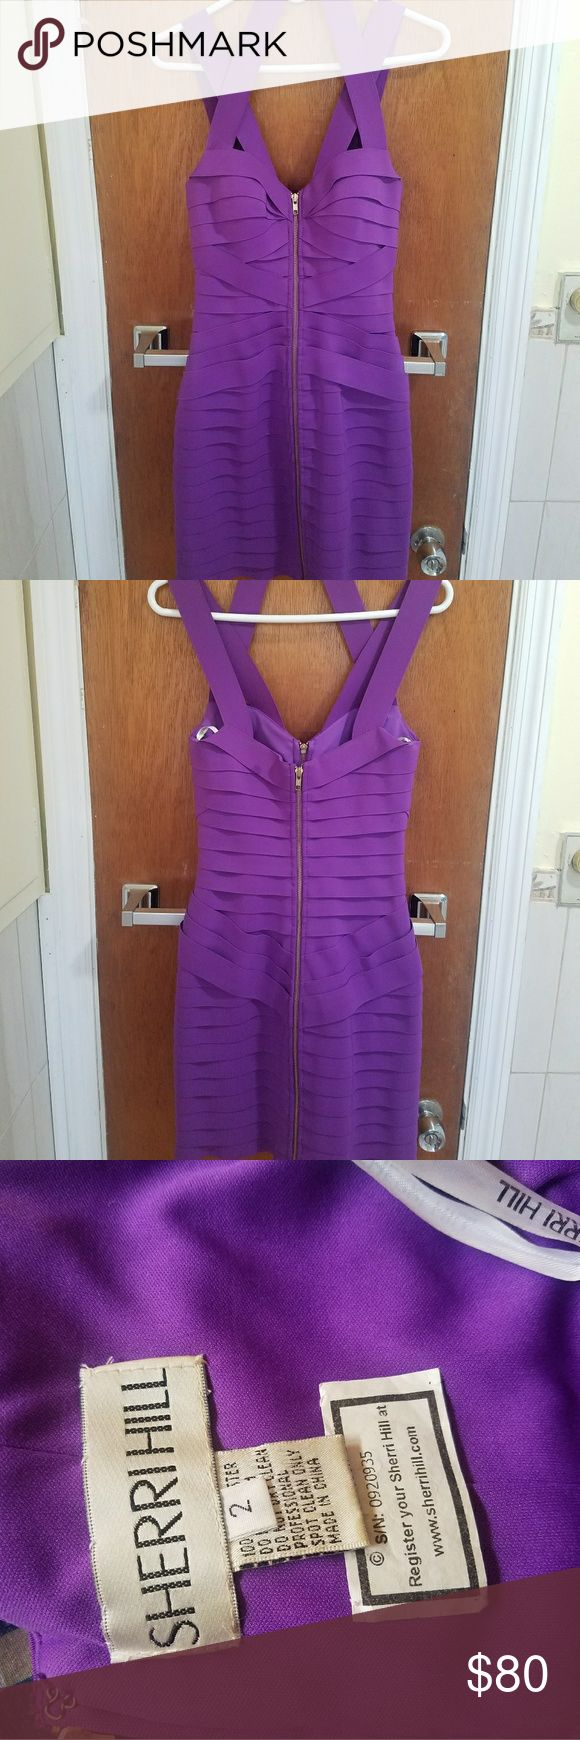 Sherri Hill Purple Zipper Bandage Dress ***PRICE IS NEGOTIABLE***  Great for cocktail parties, proms, formals, or nights out on the town. Zipper gives you adjustable cleavage. Bandage material gives sexy hourglass shape. Pretty purple jewel tone! Only worn once. Condition is like new. Sherri Hill Dresses